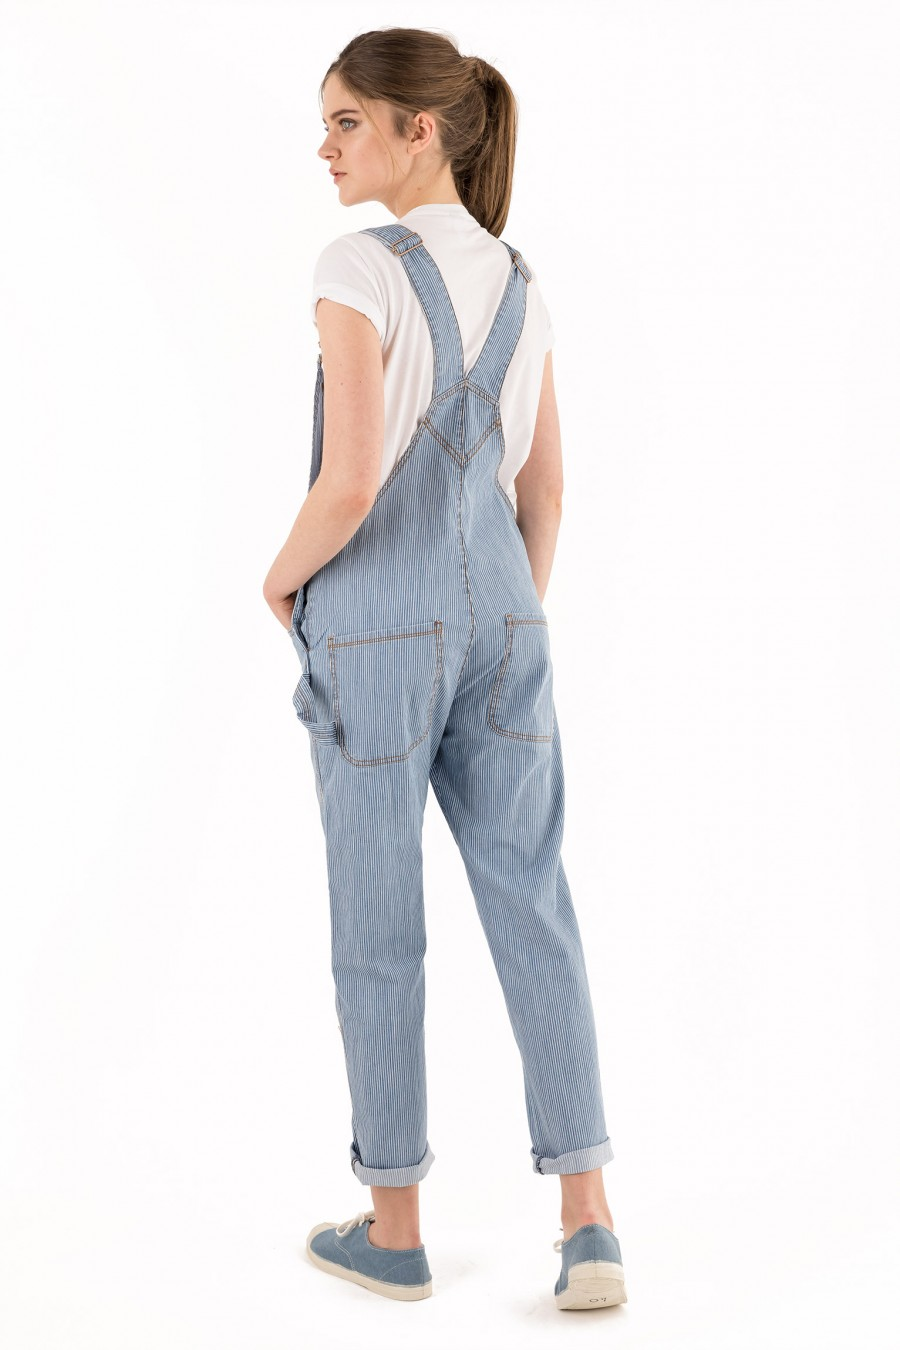 Denim overalls with white stripes